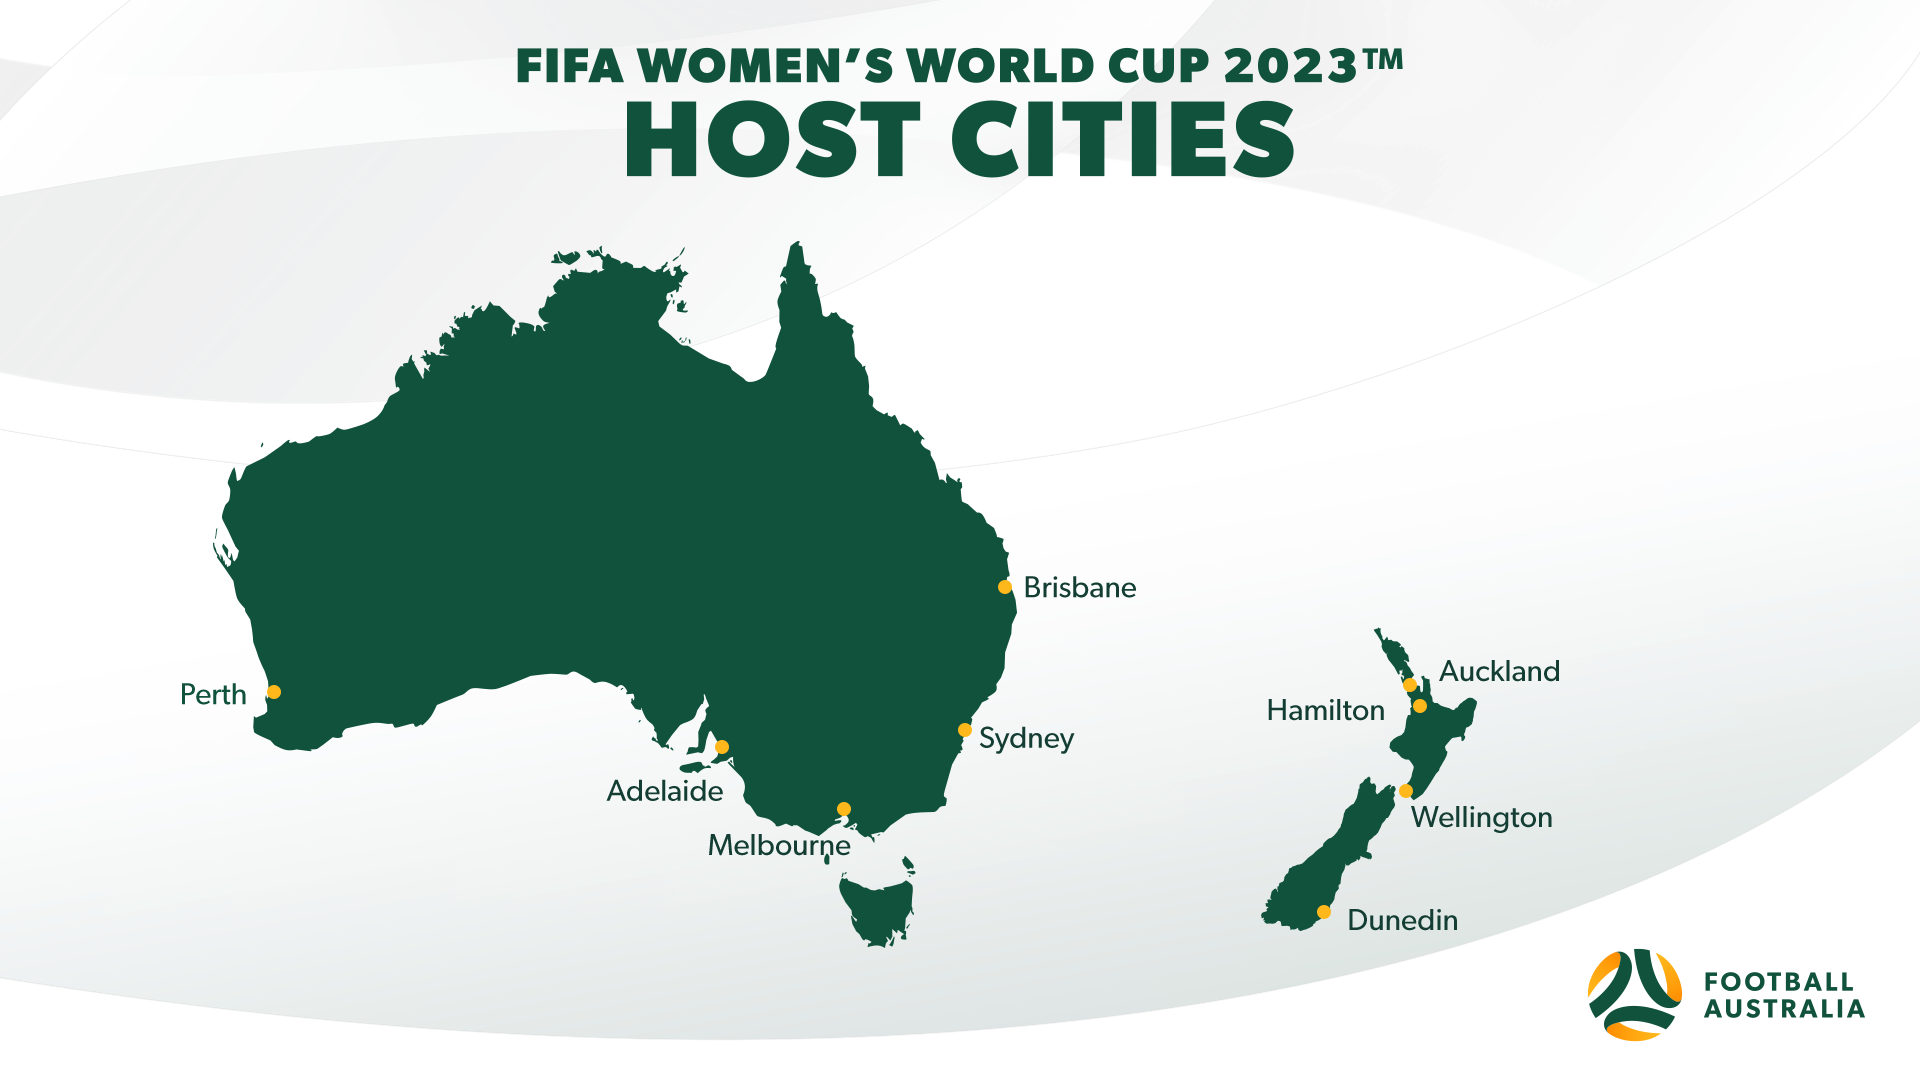 Venues for the 2023 FIFA Women's World Cup ™ in Australia and New Zealand